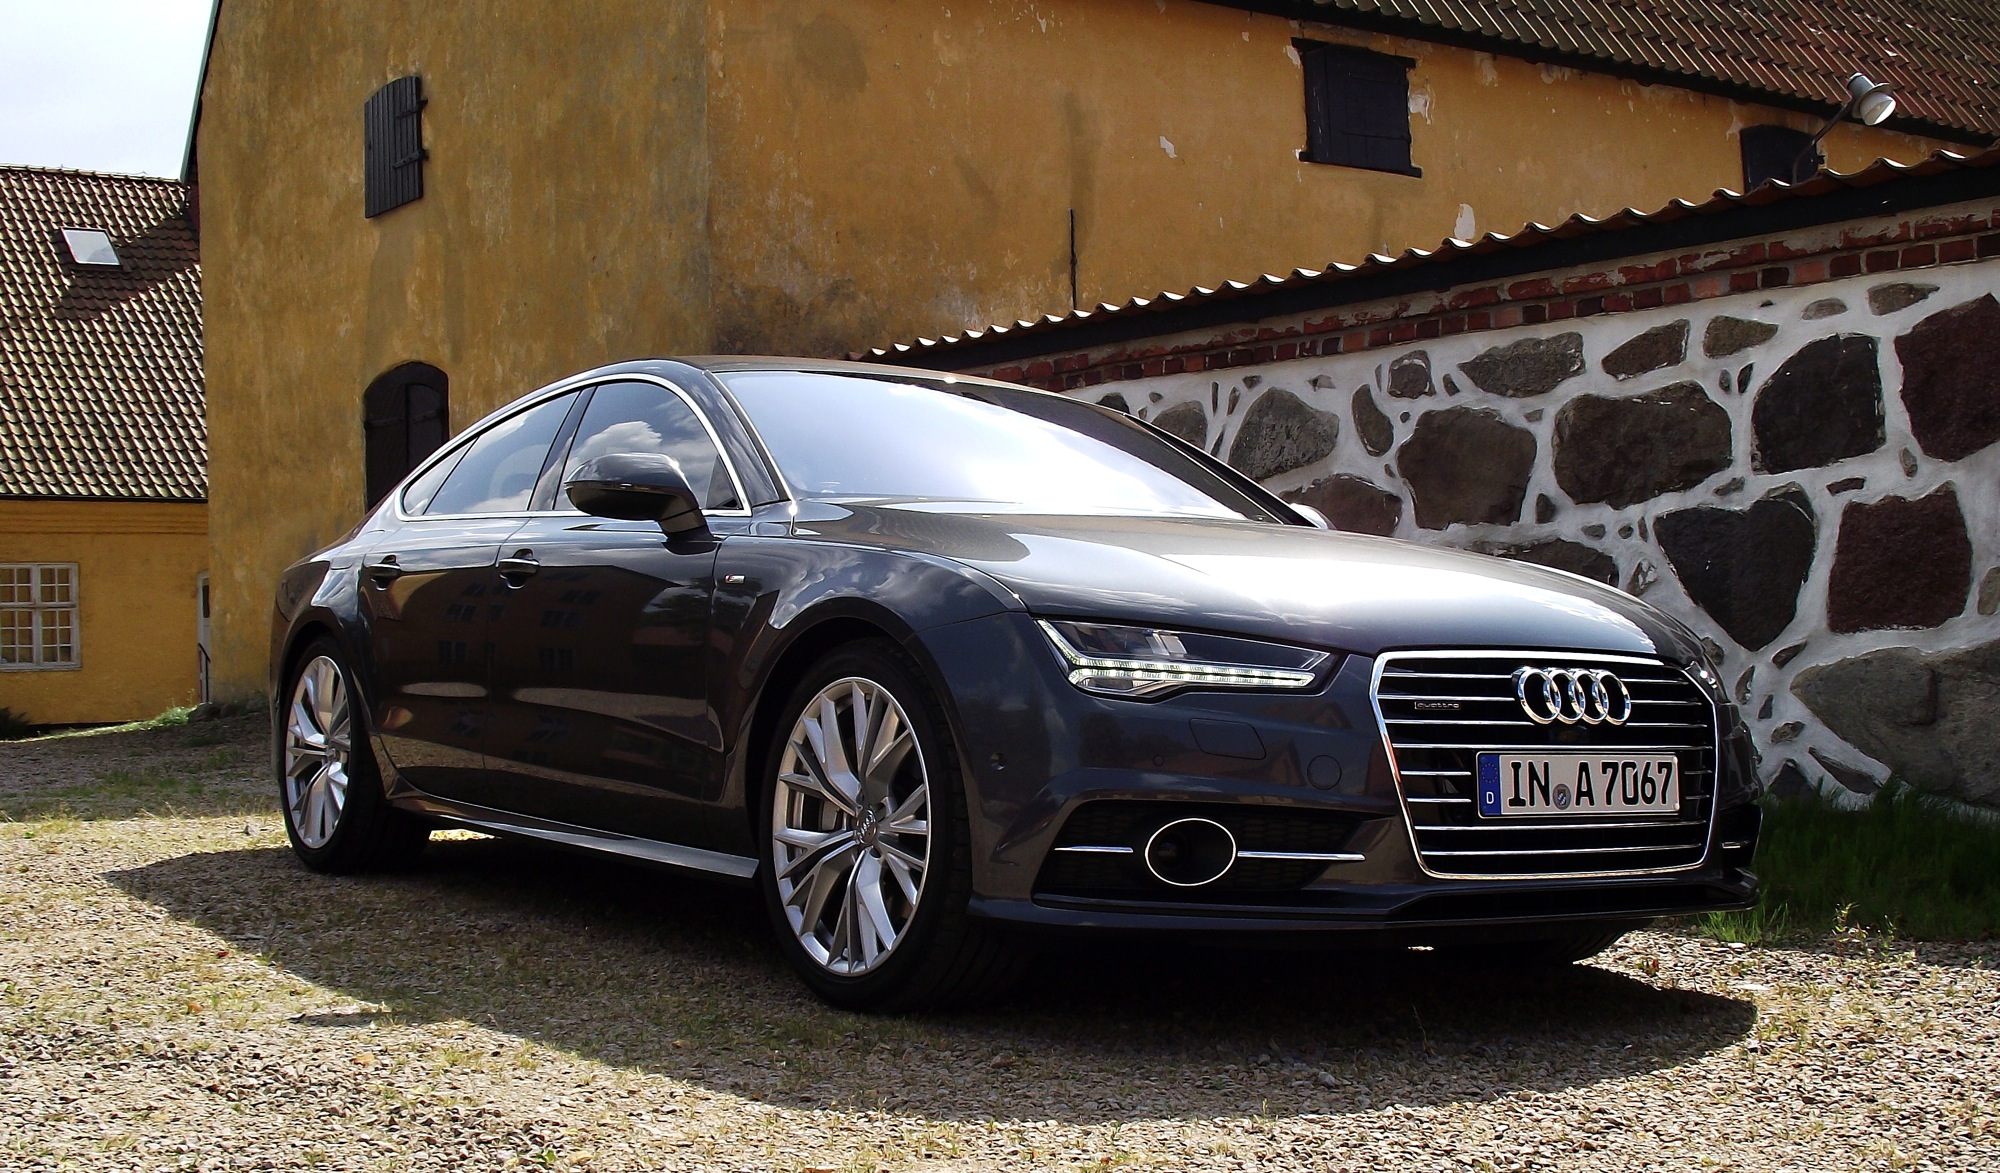 2012 audi s7 sportback 4g pictures information and specs auto. Black Bedroom Furniture Sets. Home Design Ideas